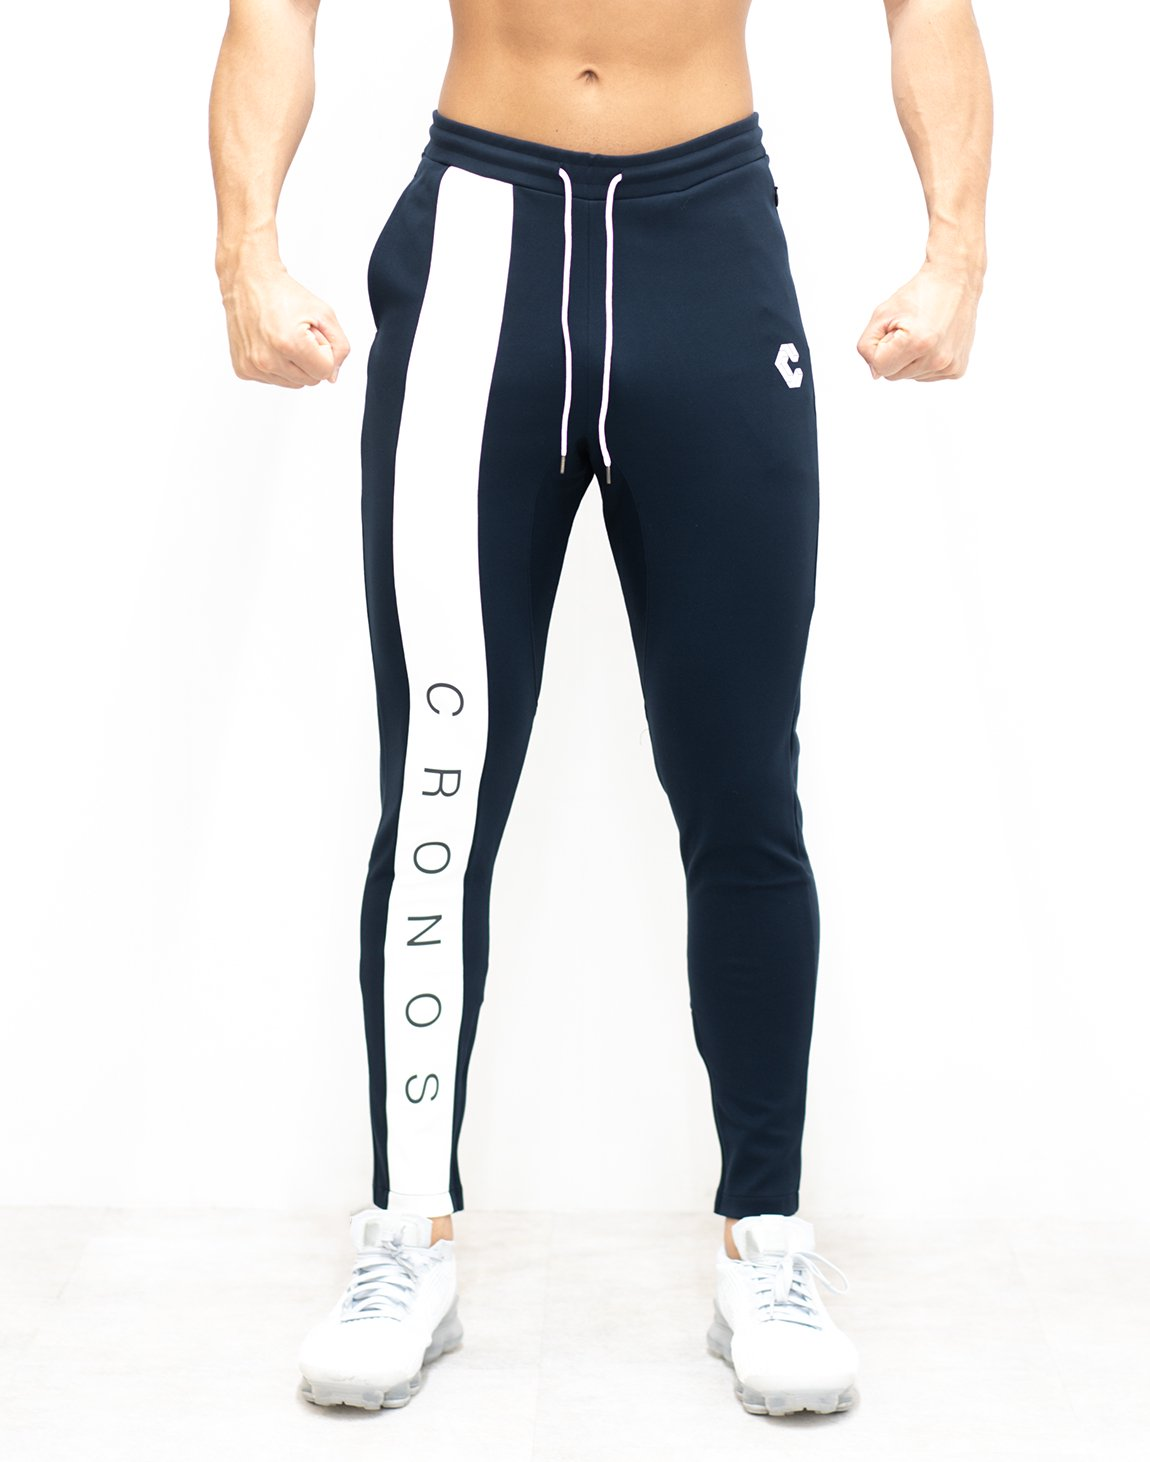 <img class='new_mark_img1' src='https://img.shop-pro.jp/img/new/icons1.gif' style='border:none;display:inline;margin:0px;padding:0px;width:auto;' />CRONOS NEW LINE PANT 【NAVY×WHITE】